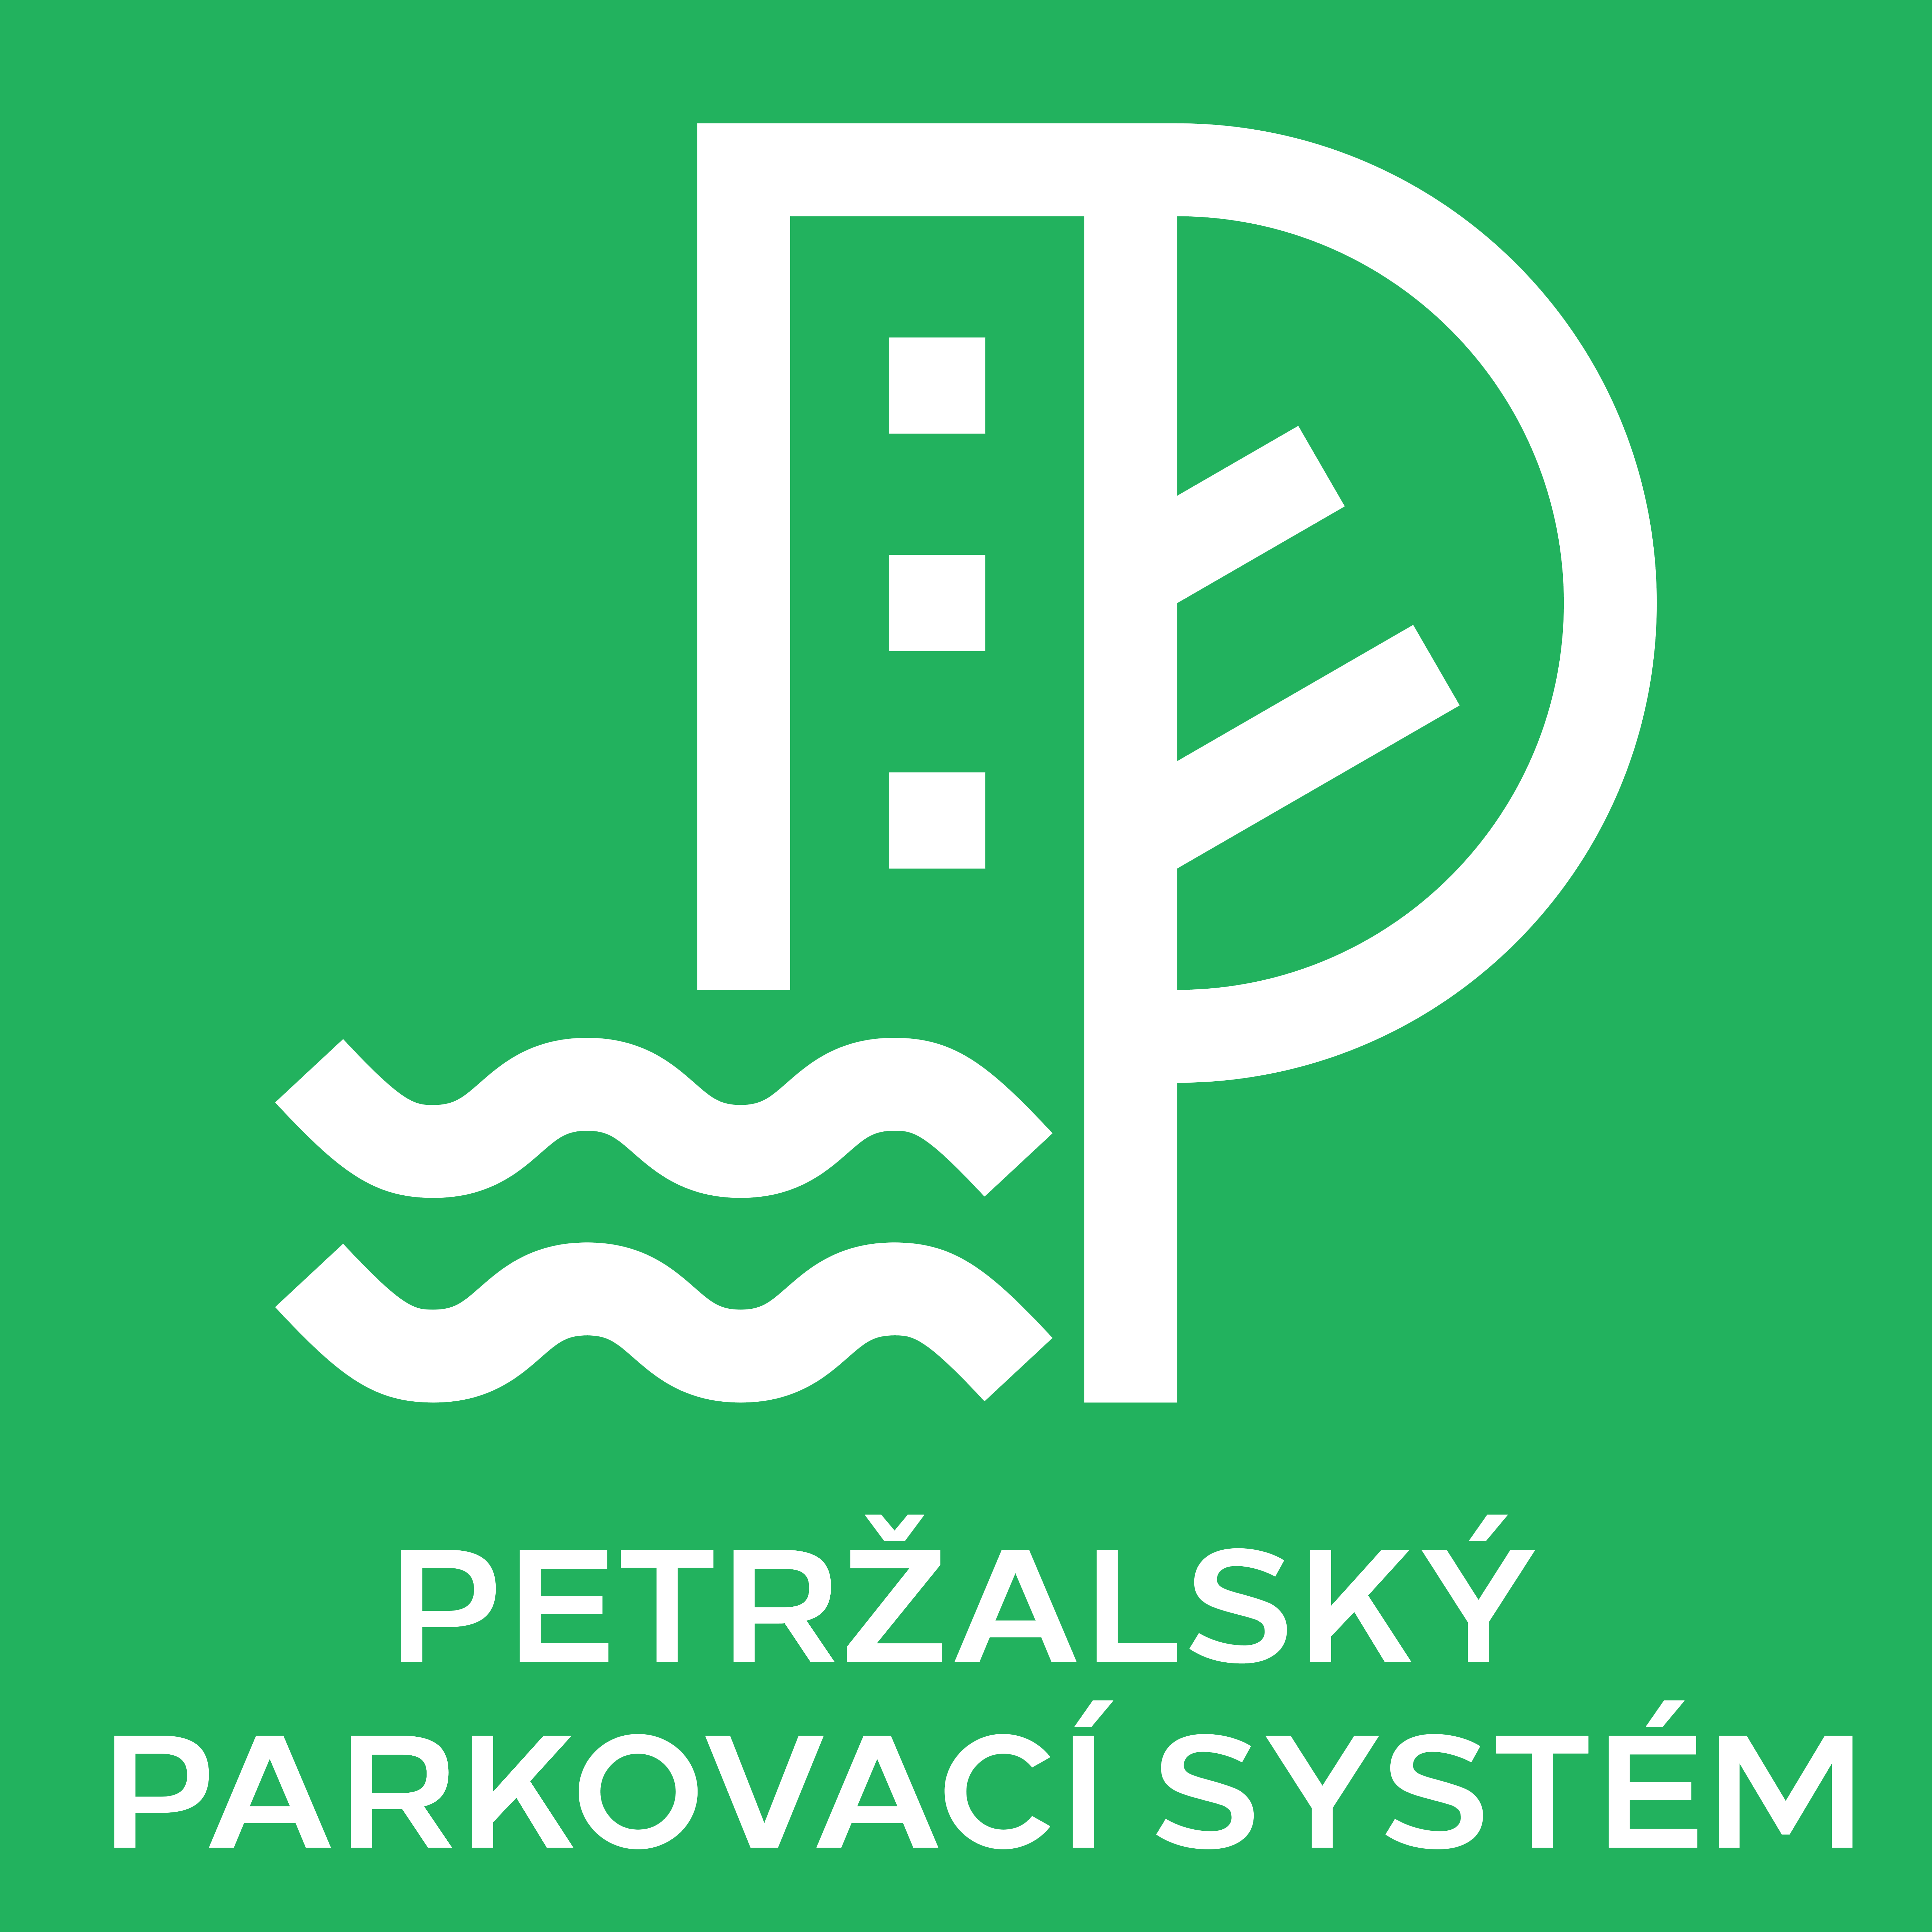 PPS-logo-png